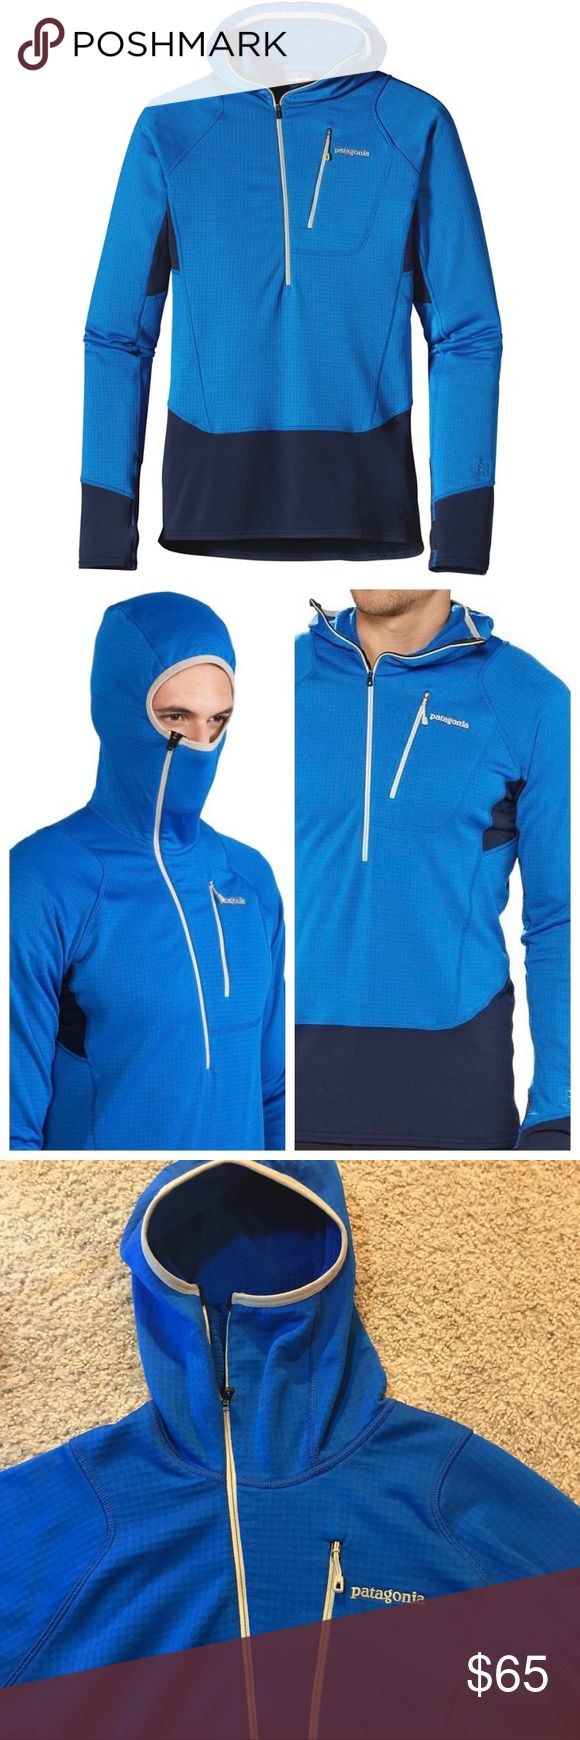 """Patagonia R1 Men's """"Hoody"""" Used but in excellent condition! 🎿 3/4 zip, mid-layer hoodie w/ thumb holes, left-chest pocket & """"balaclava-style"""" hood.  An awesome mid-layer, but looks great and is super warm when worn alone as a normal pullover.    • Exclusive to Patagonia, this fabric offers permanent odor control is light & breathable w/ outstanding stretch & durability. • Snug-fitting hood fits comfortably under helmet. • Raglan sleeves for increased mobility. • On-seam thumb holes for…"""